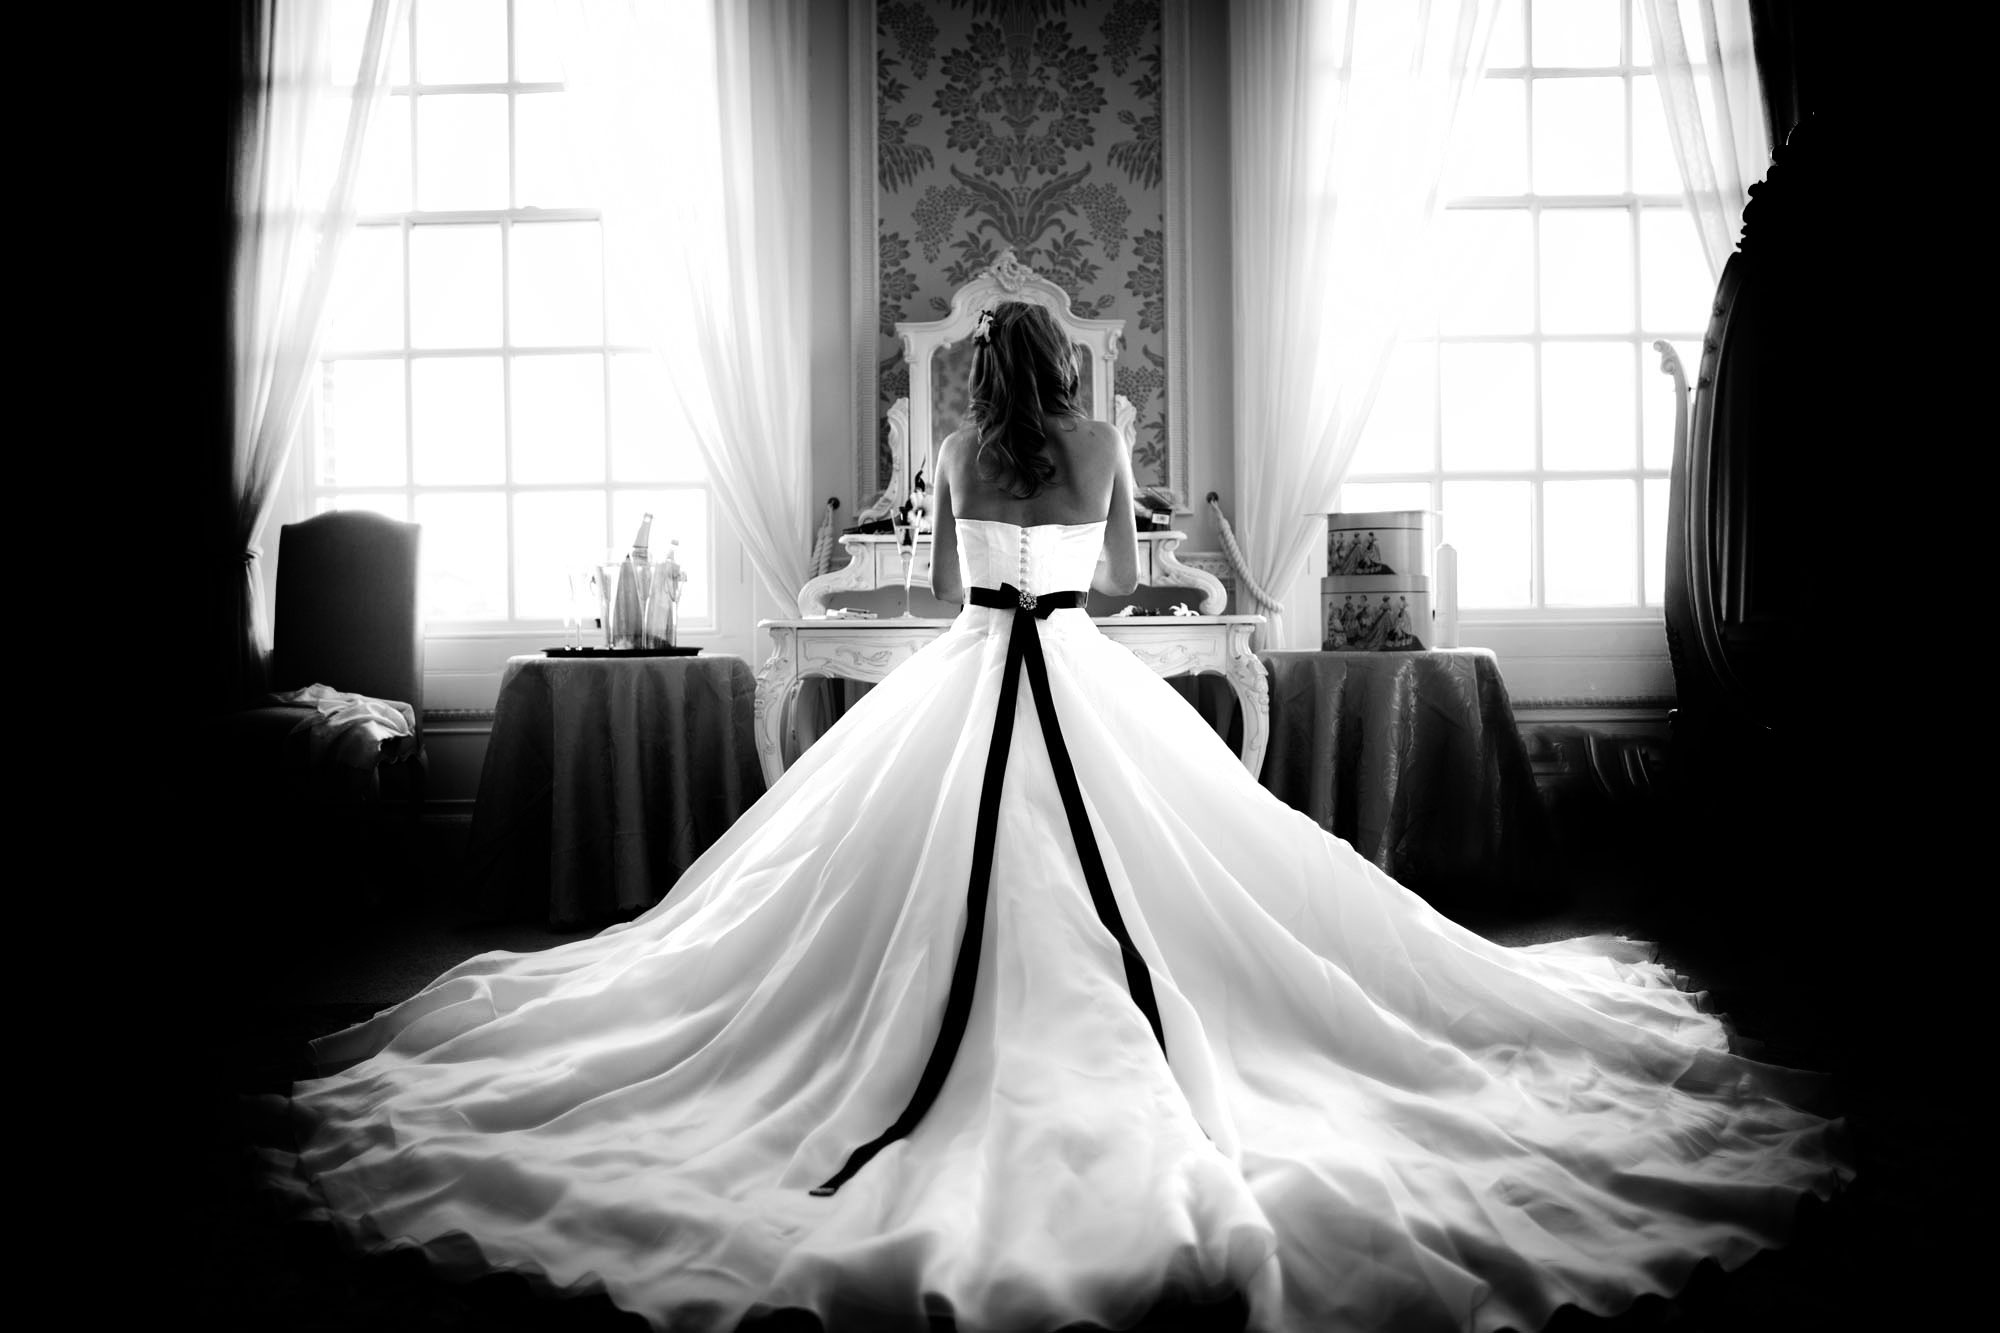 A White Wedding by Hank Moody at Spillwords.com